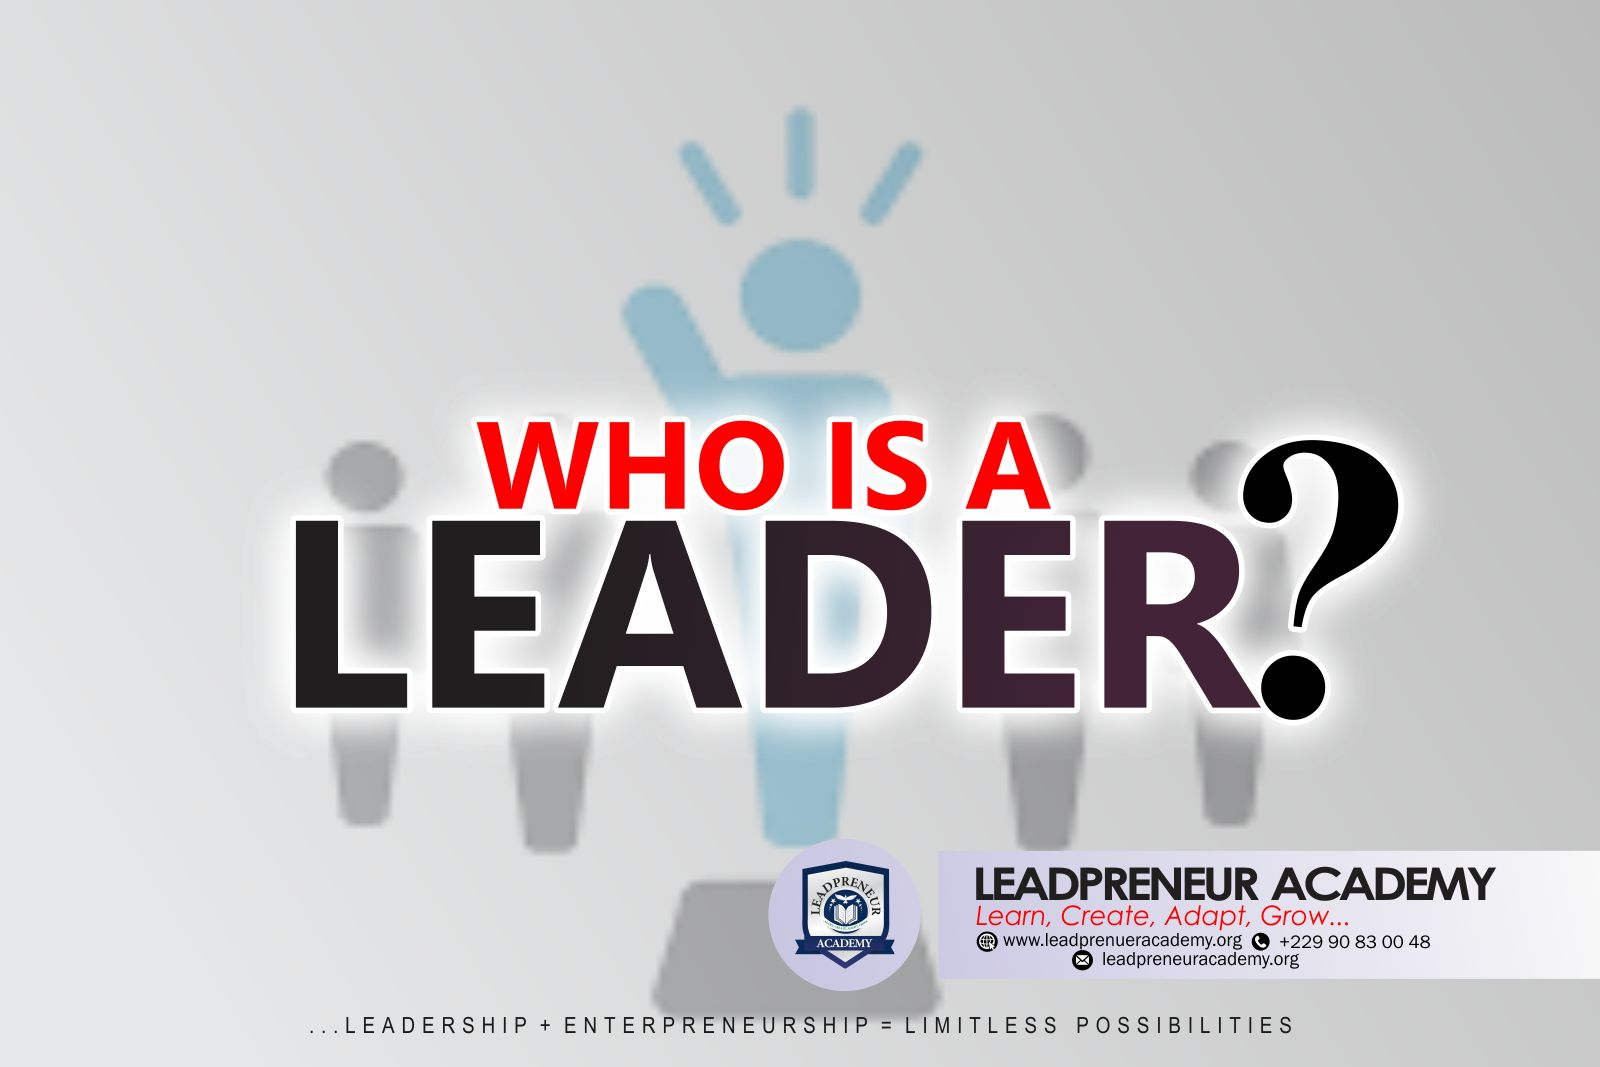 who is a leader